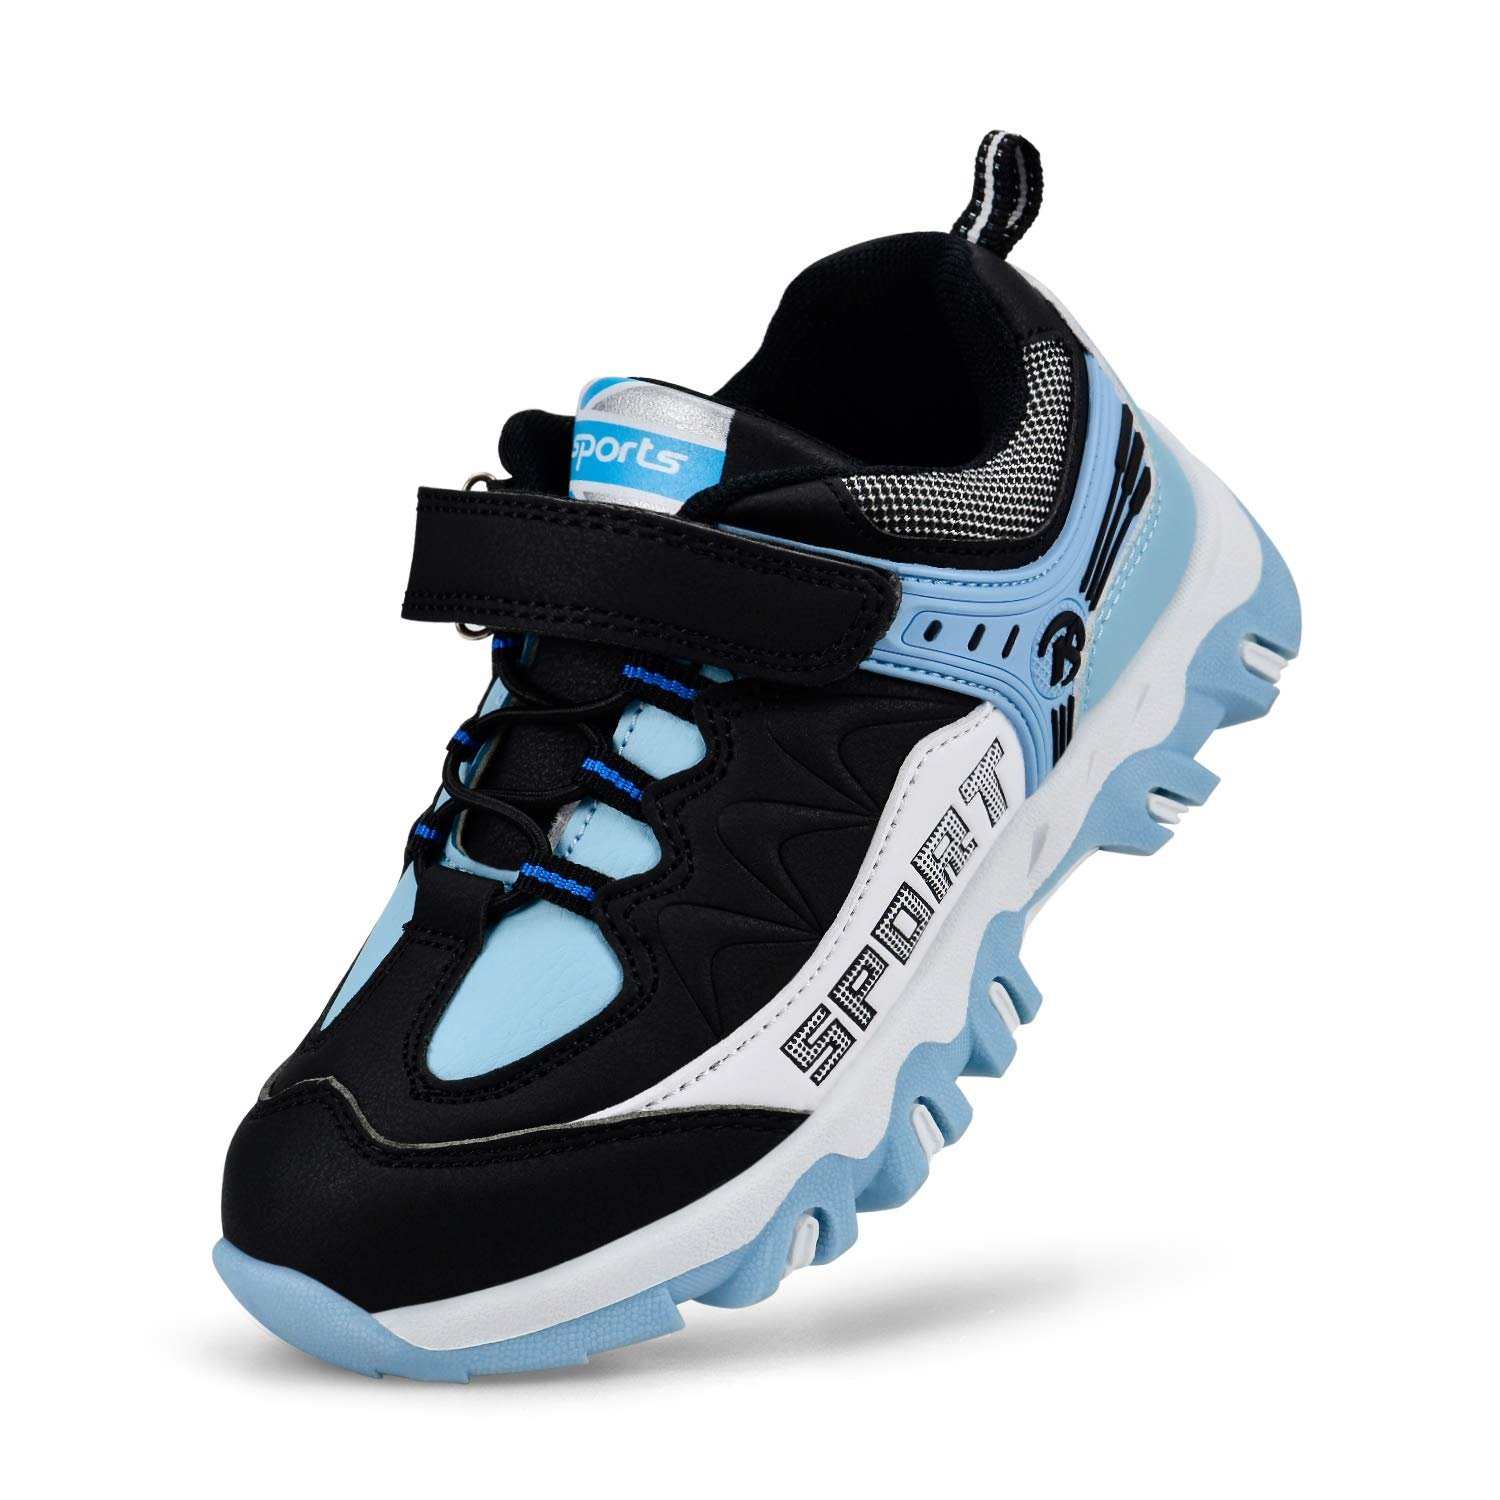 MARSVOVO Girls Shoes Non-Slip Waterproof Hiking Shoes Girls Running Shoes Blue/Black 8.5 Toddler